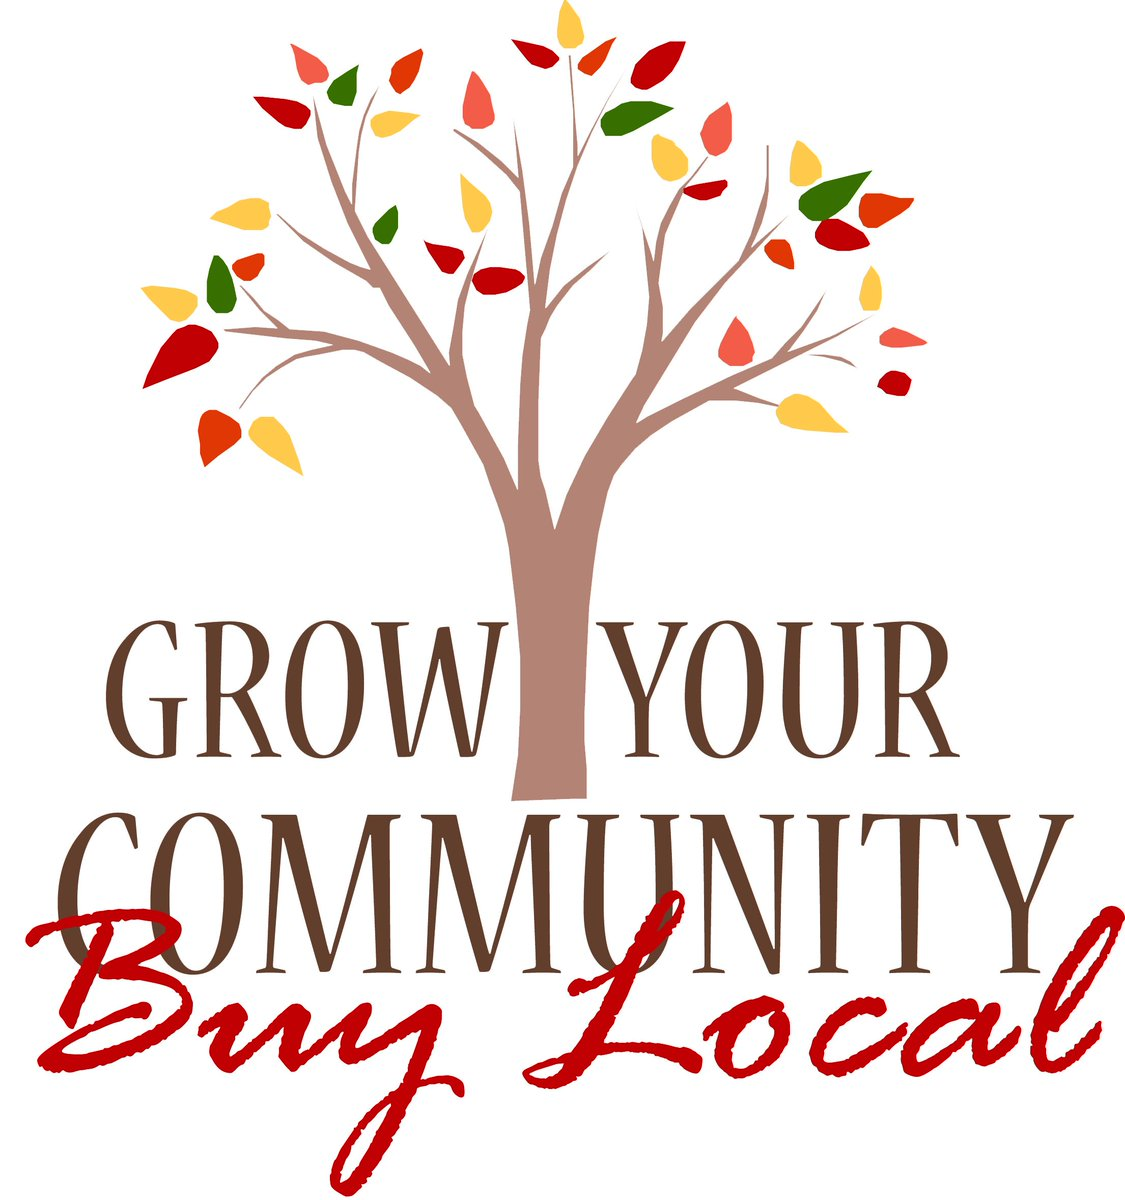 License Bureau Of Maryville On Twitter Did You Know That You Can Be Entered To Win Chamber Bucks When You Visit Our Office Don T Miss Your Chance To Shop With The Over